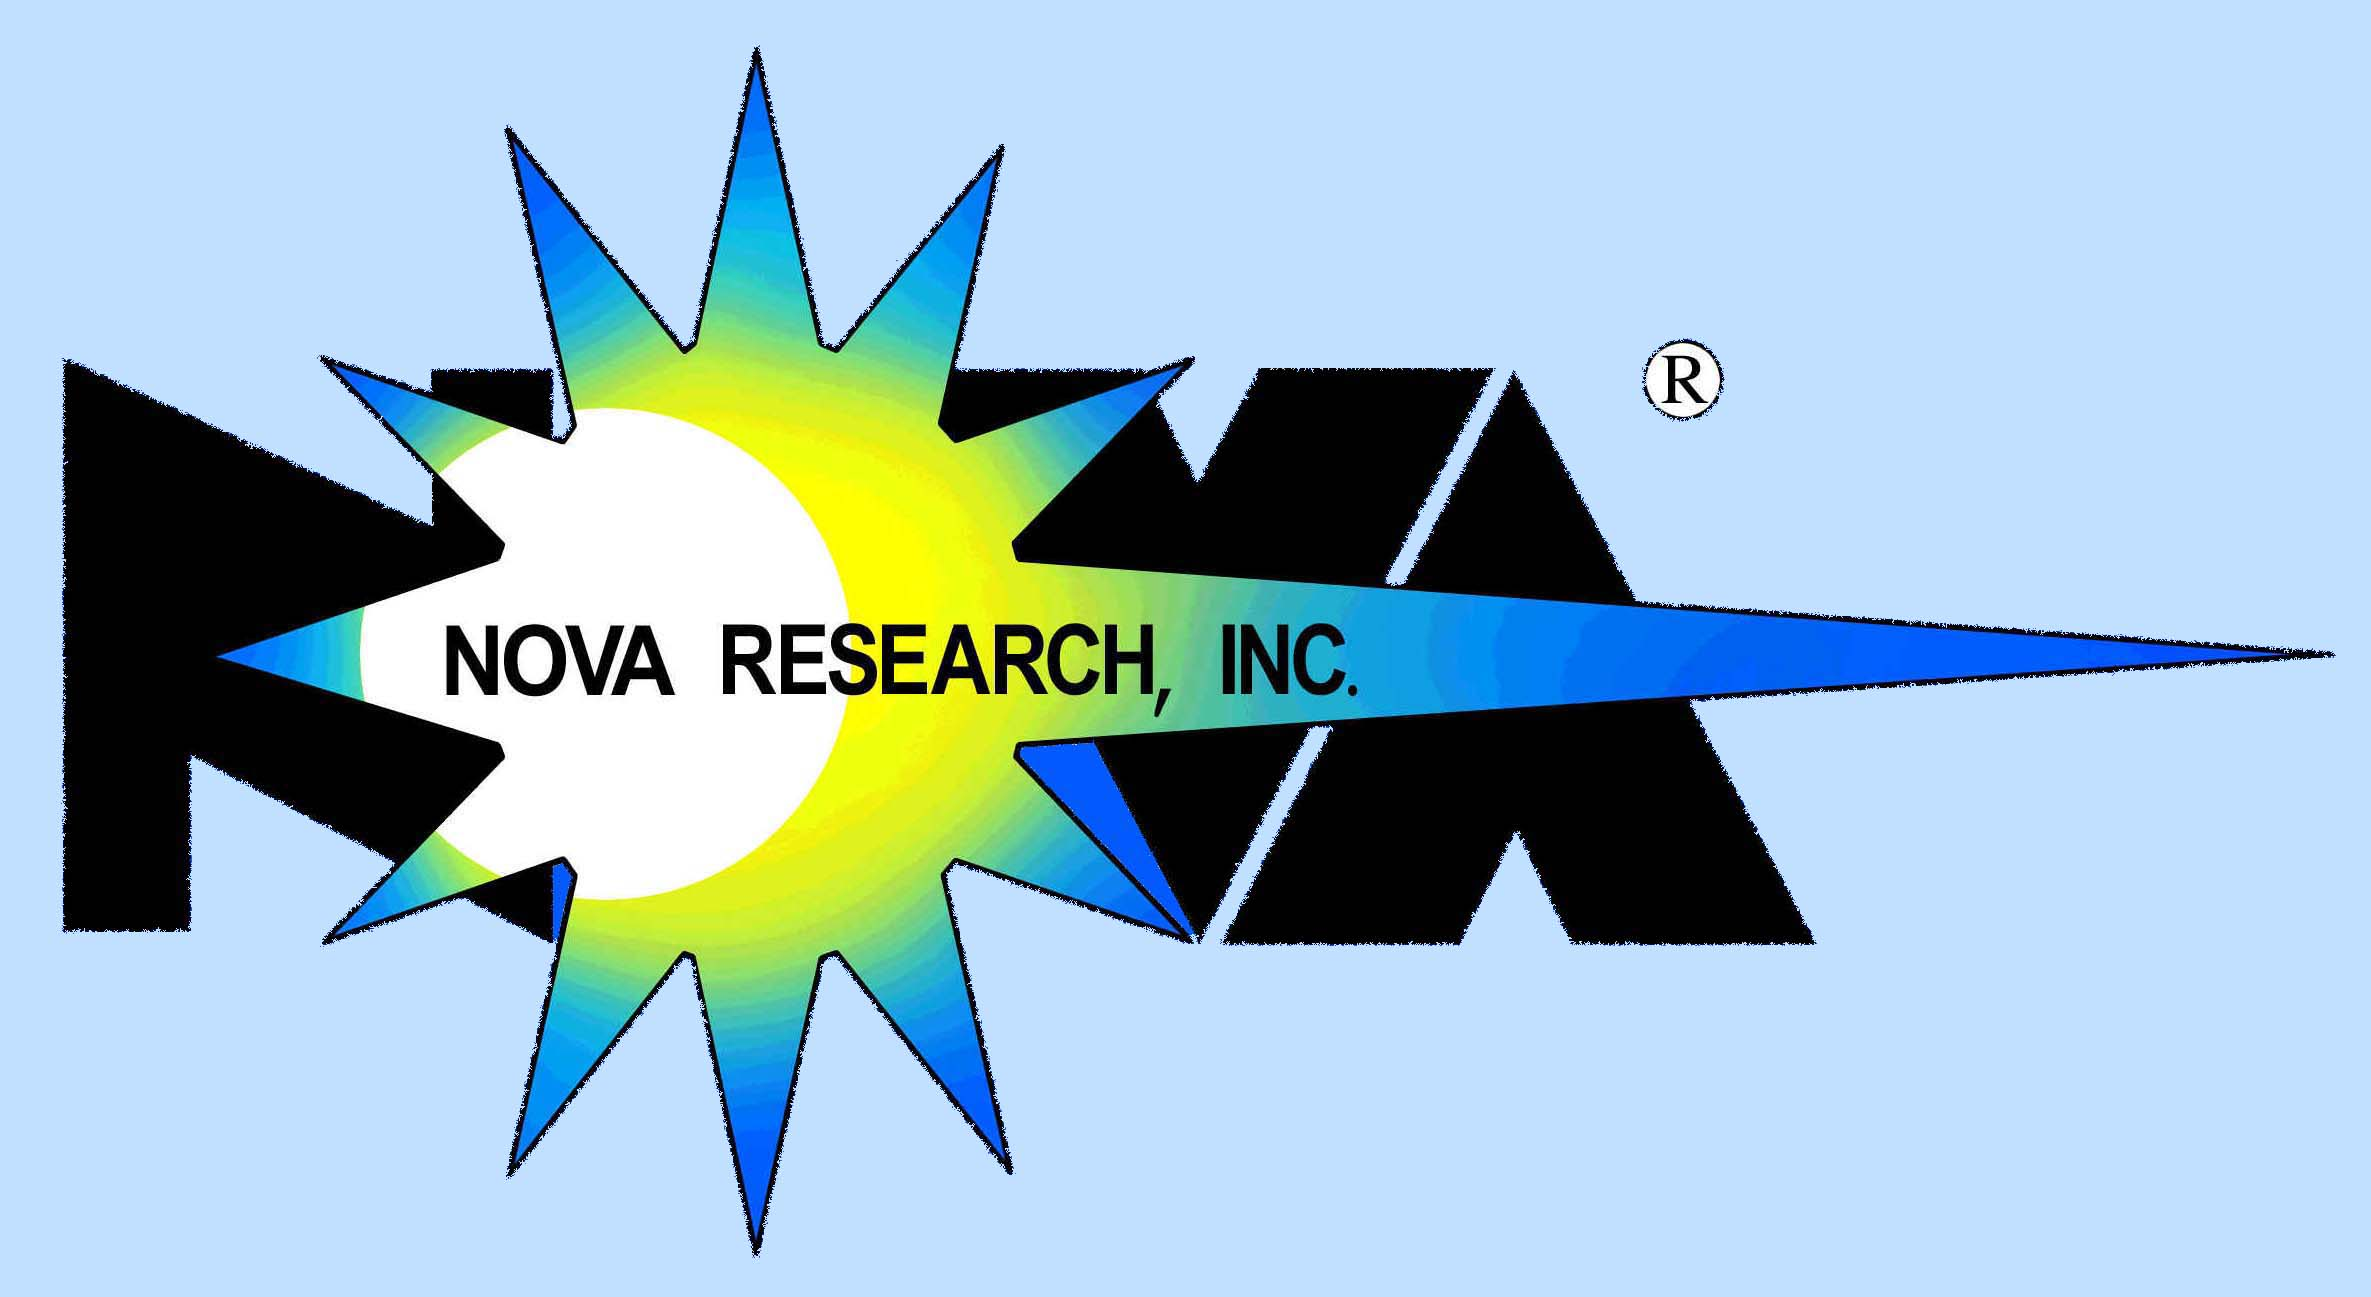 Nova Research, Inc. Logo